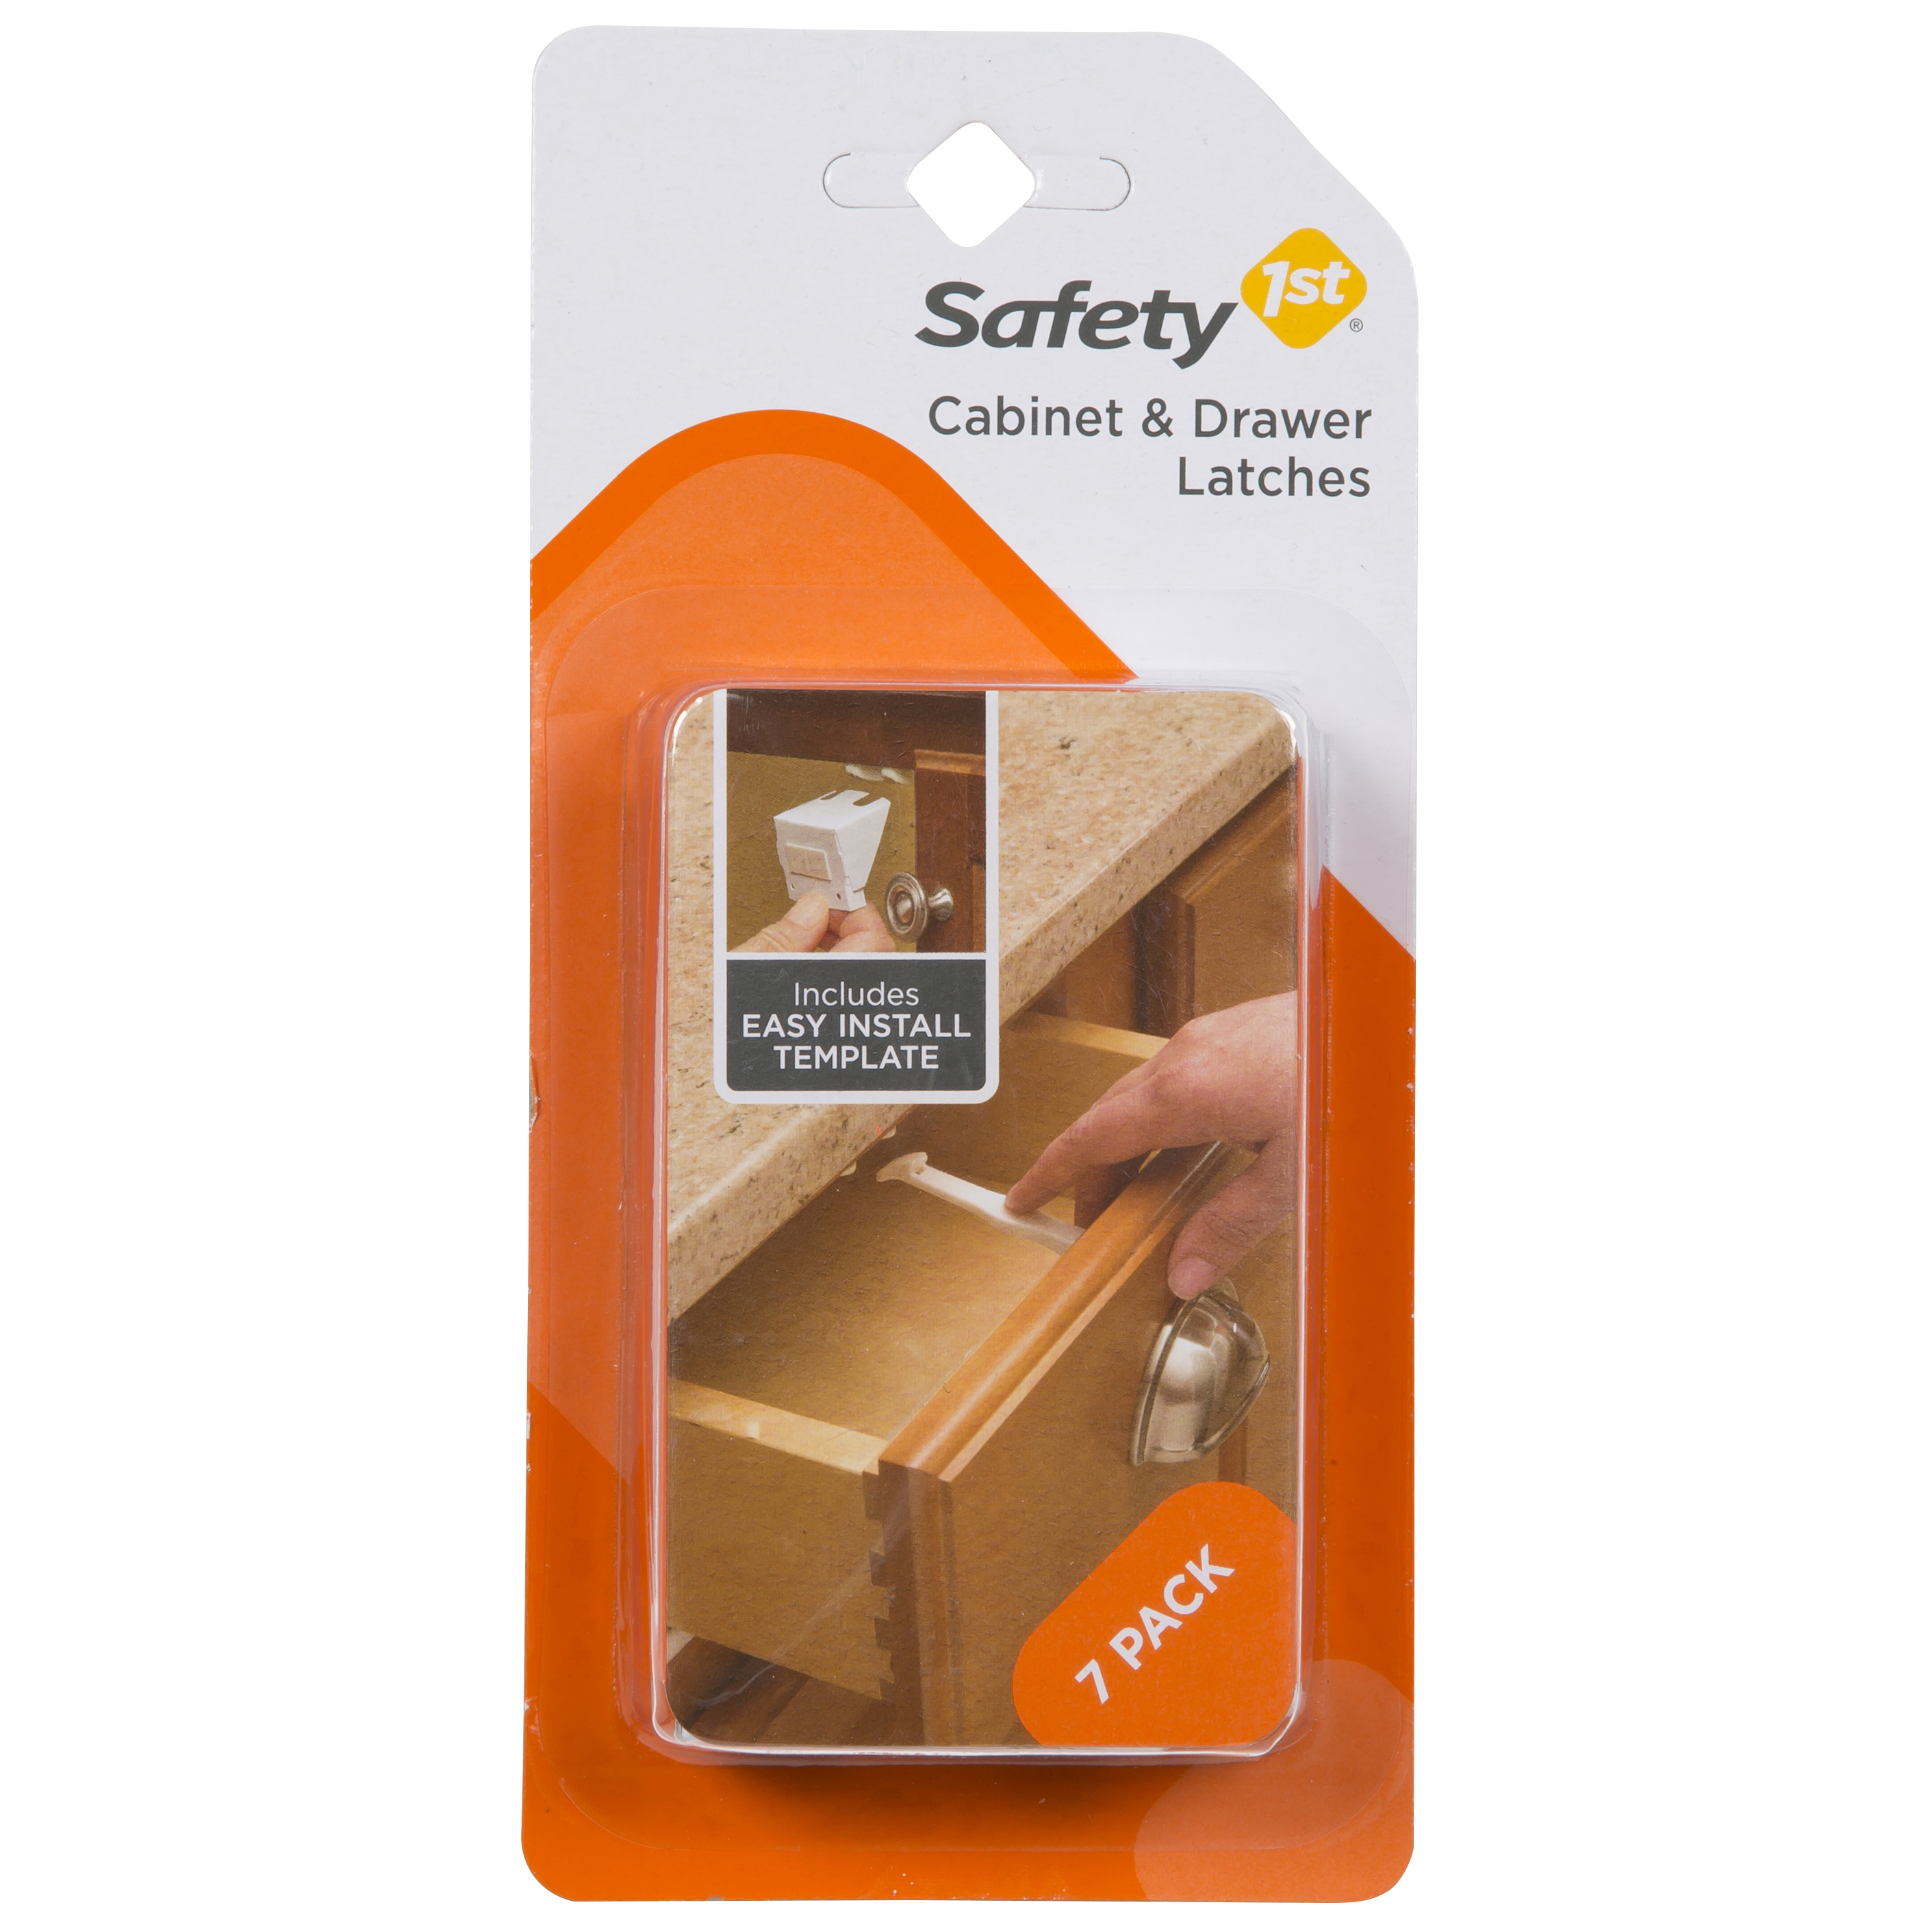 Safety 1ˢᵗ Cabinet & Drawer Latch, White